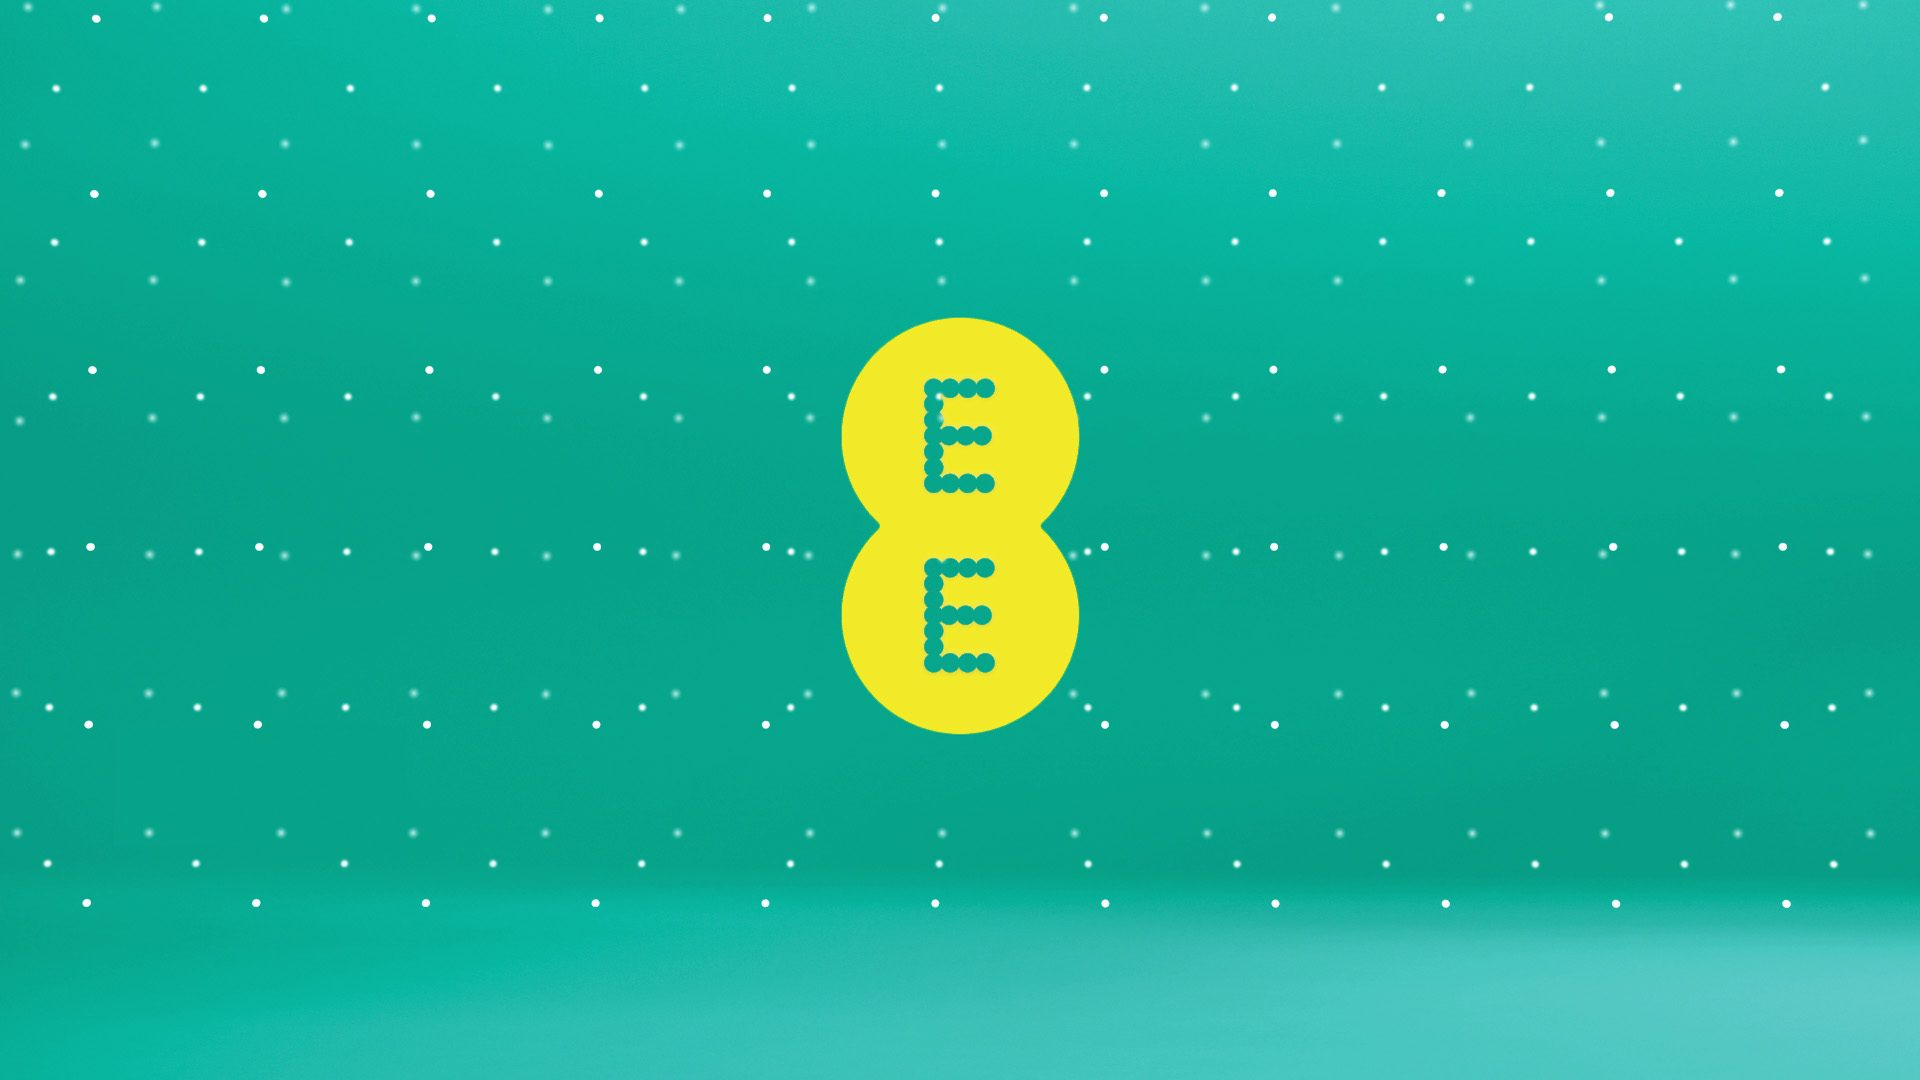 ee animation companies logo